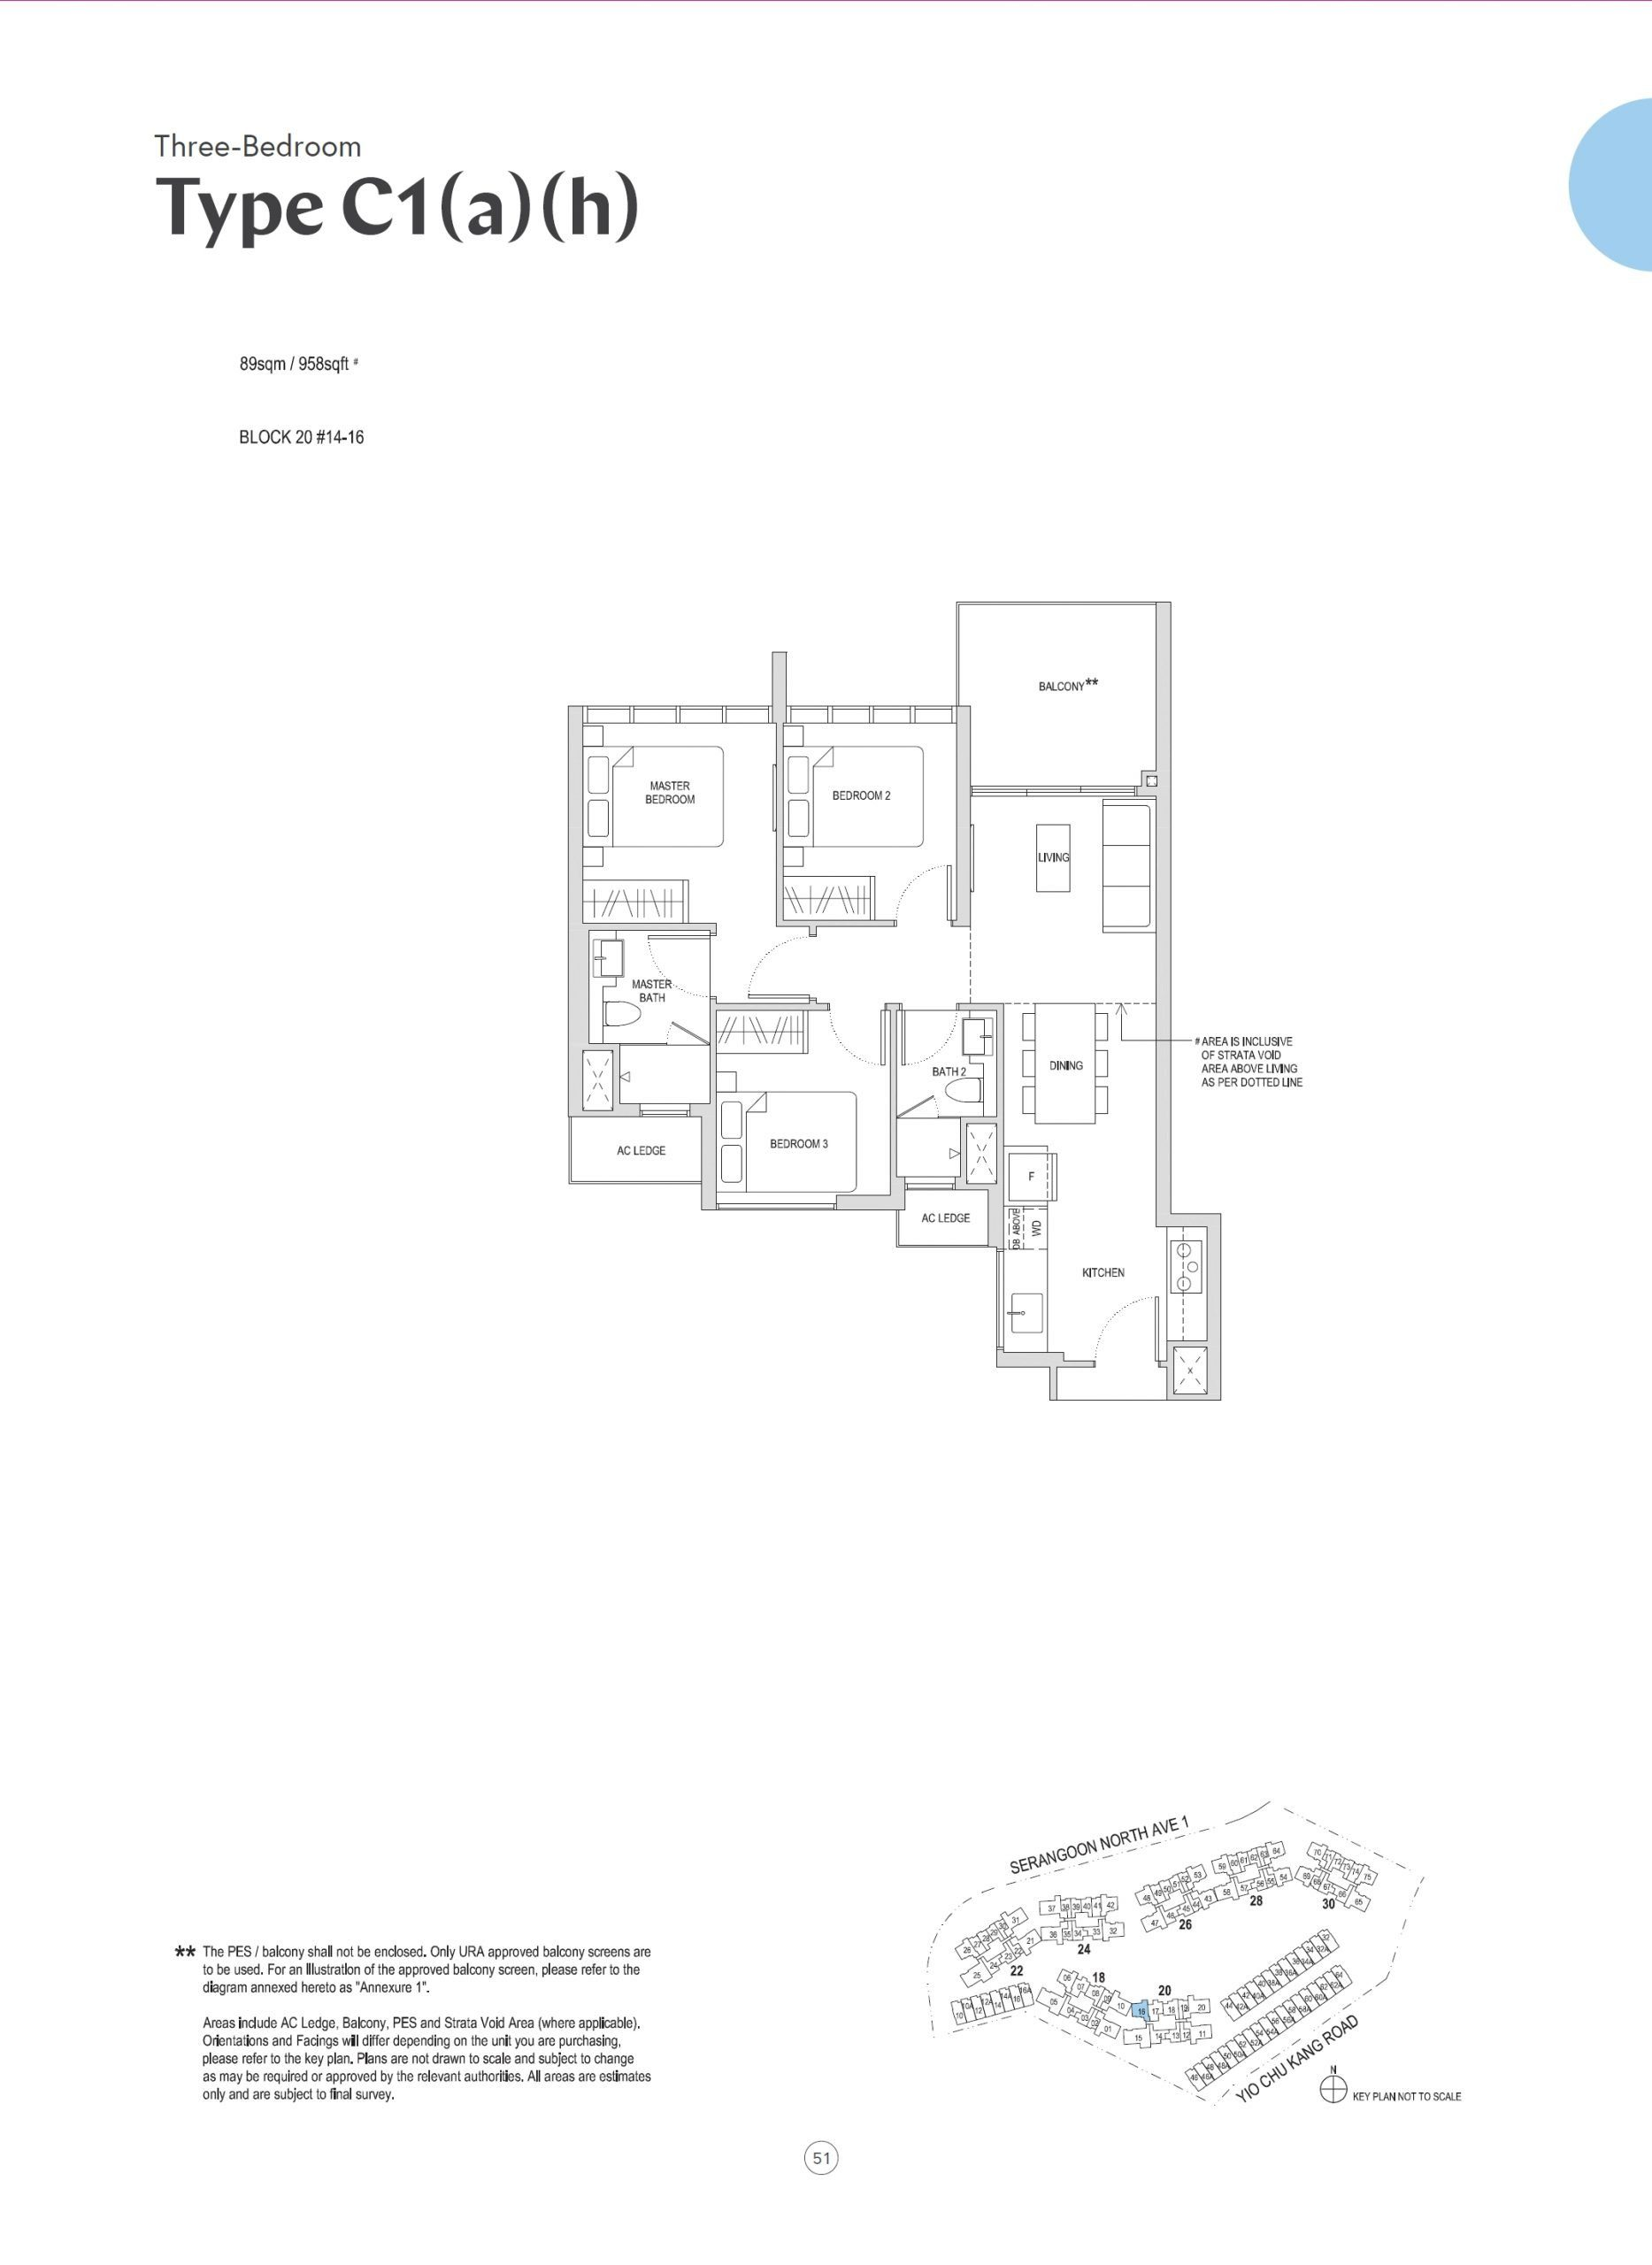 Affinity at Serangoon 3 Bedroom C1 a h scaled